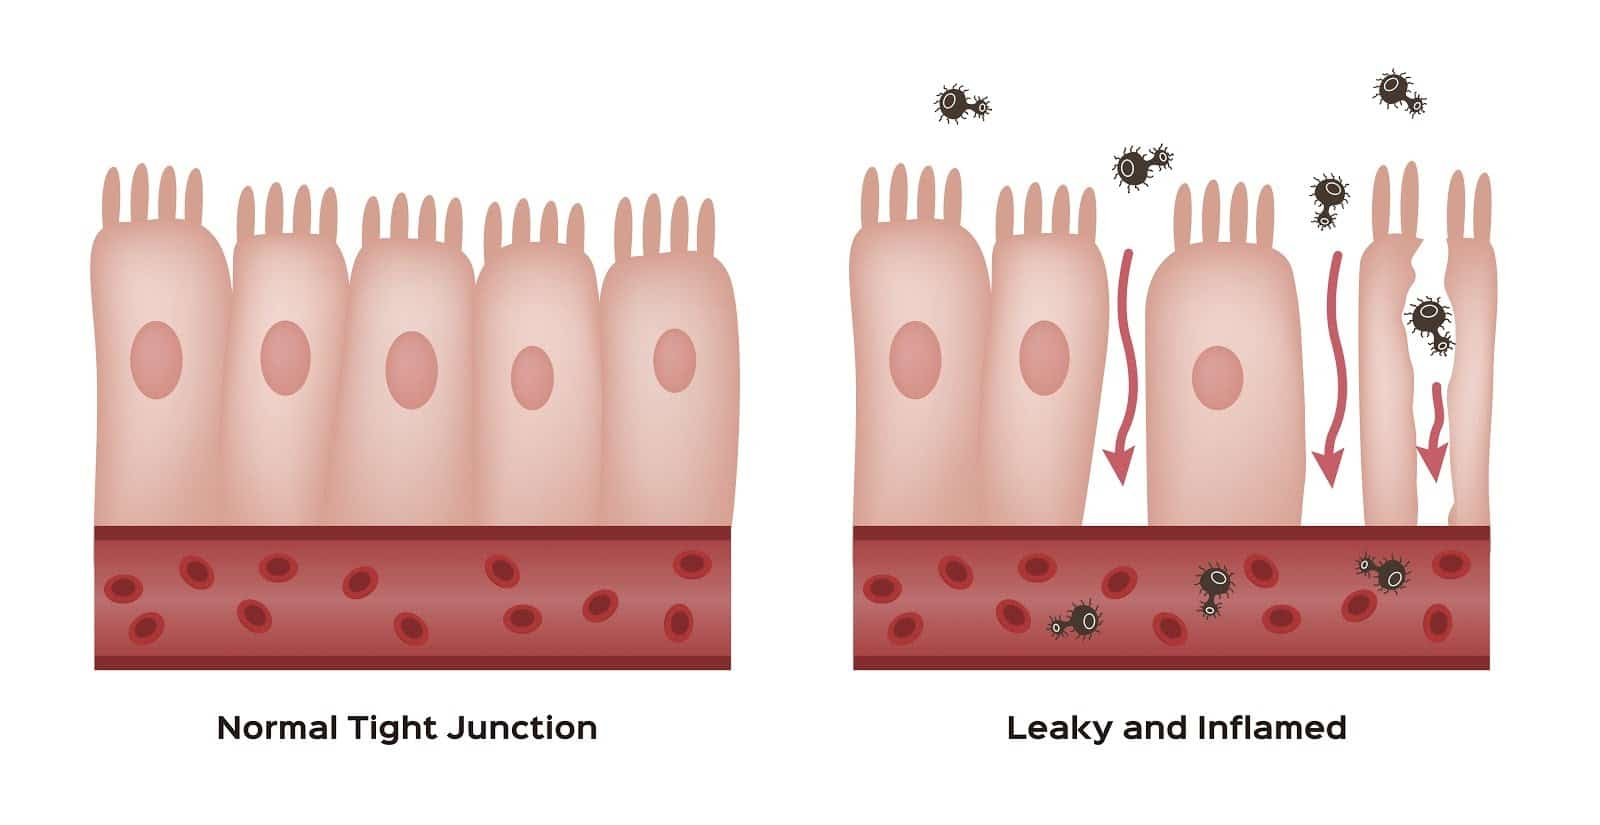 graphic-of-the-inner-walls-of-the-gut-showing-normal-tight-junctions-and-a-leaky-gut-side-by-side